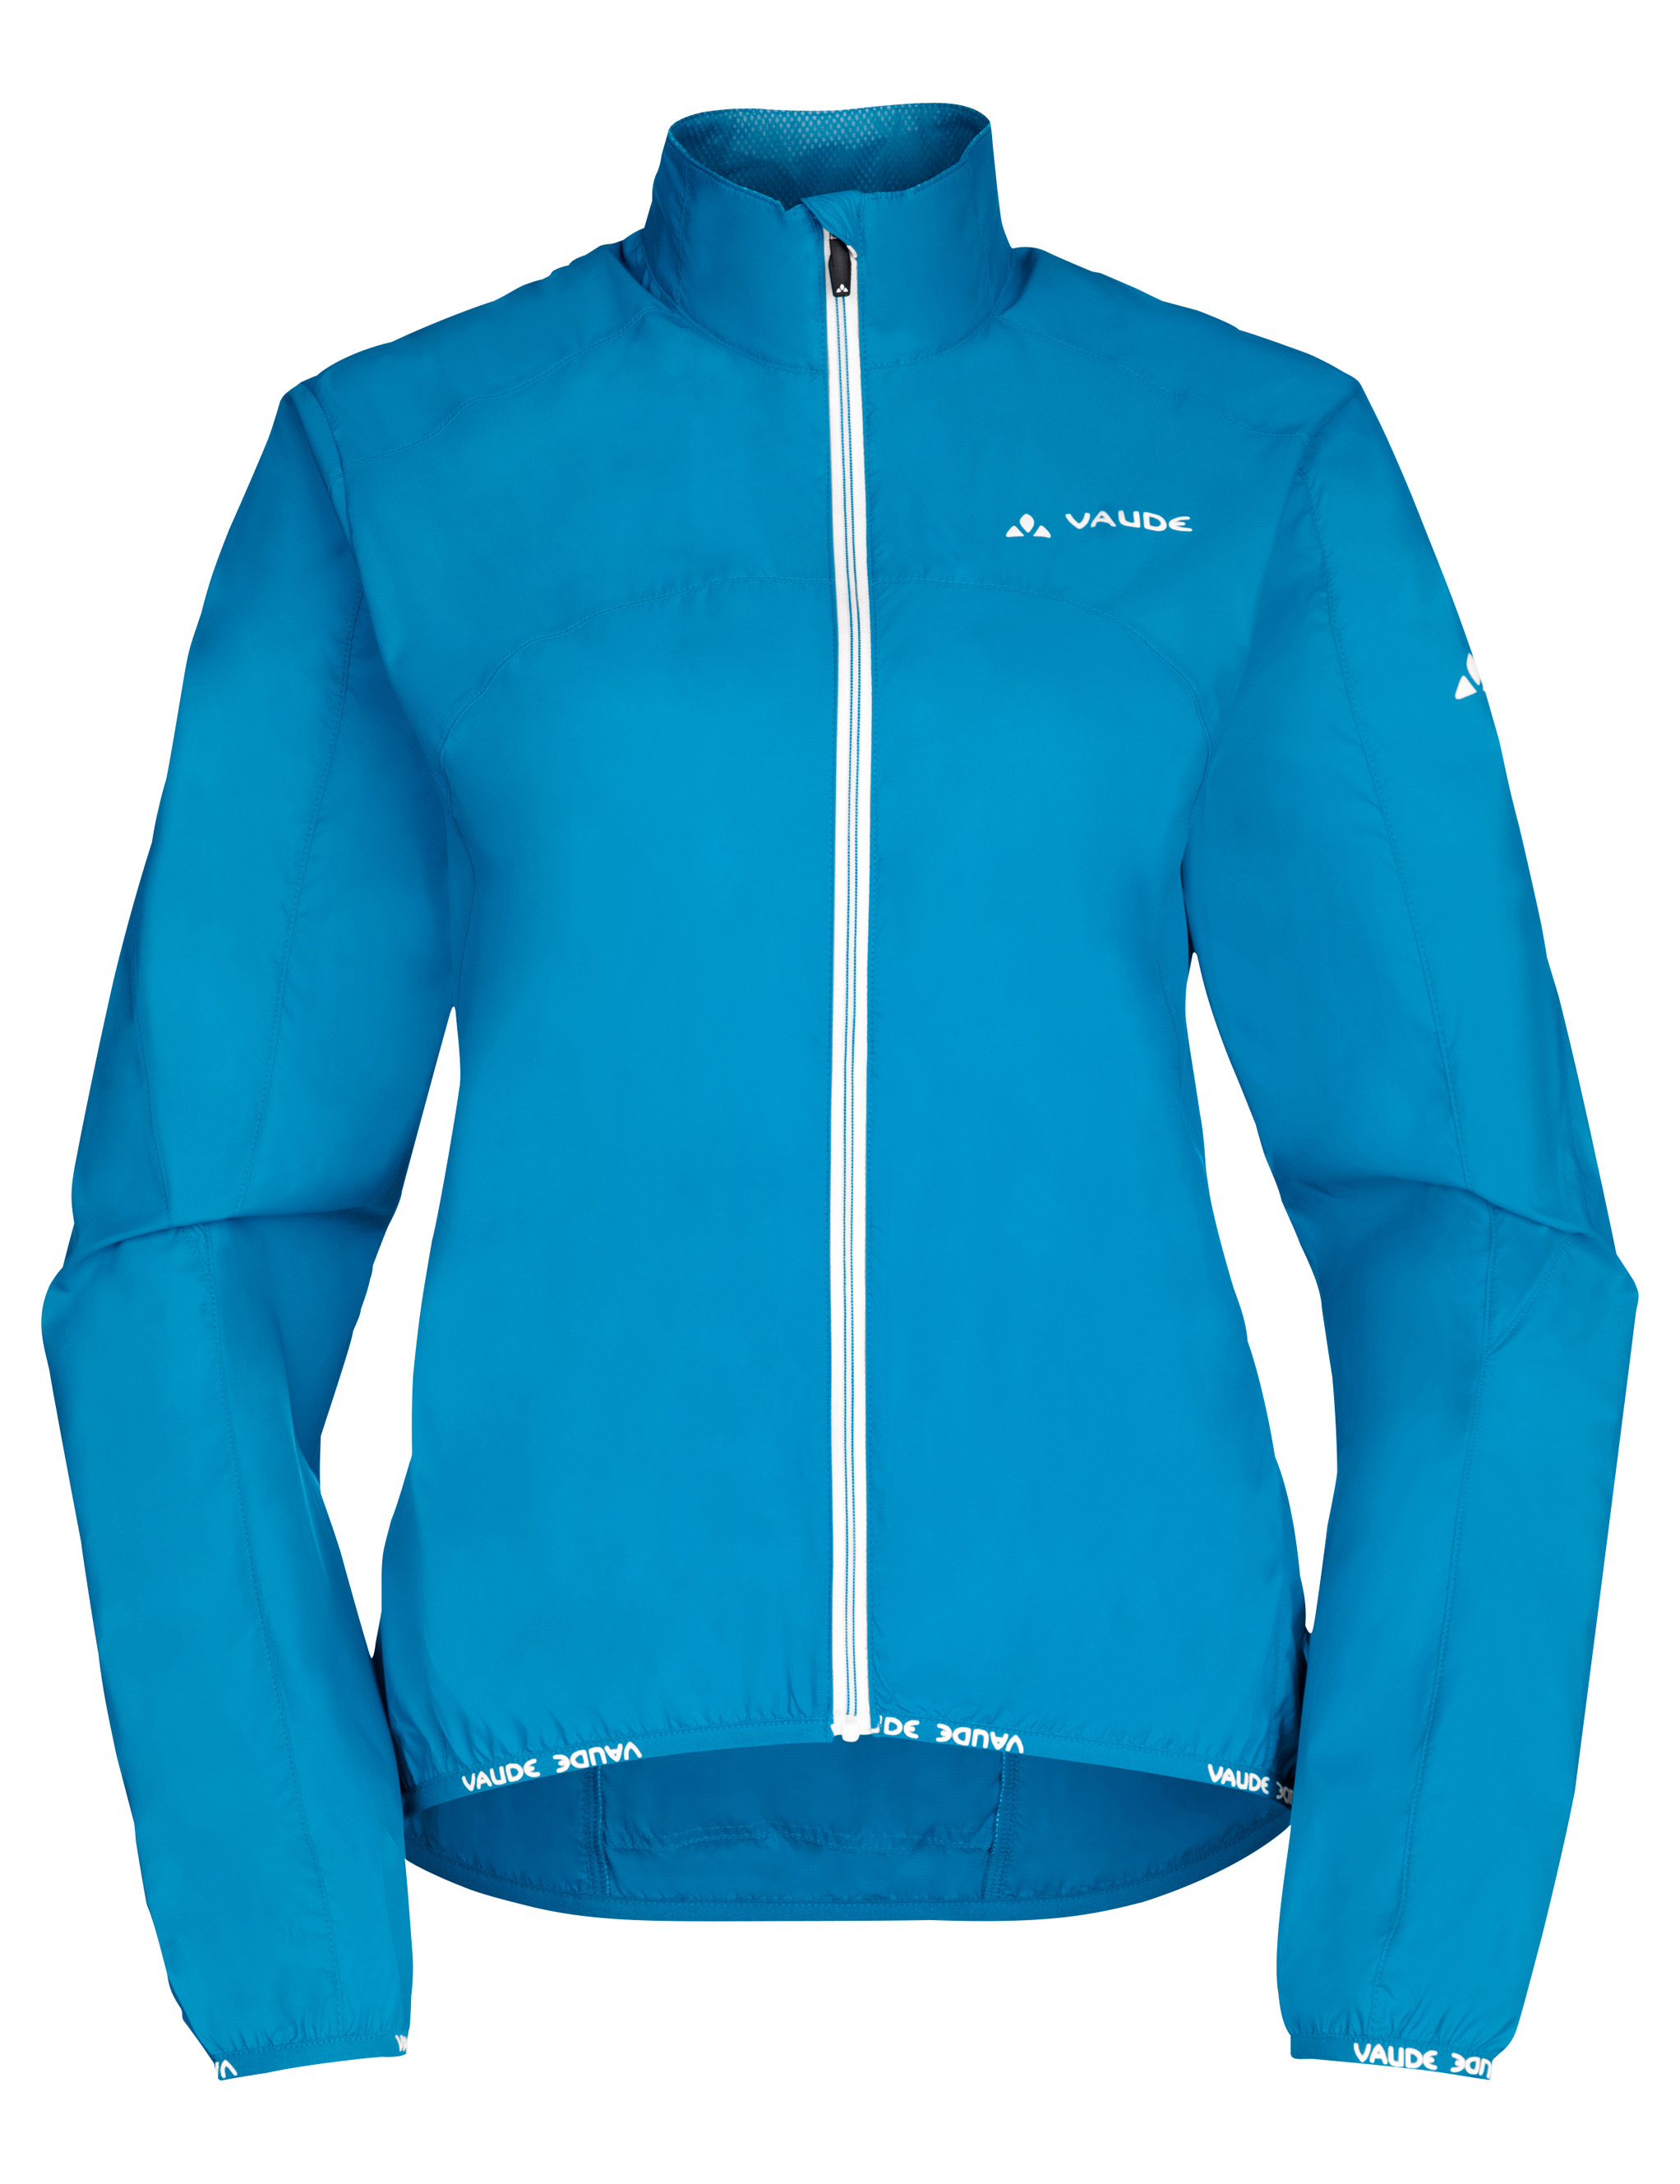 VAUDE Women´s Air Jacket II spring blue Größe 40 - schneider-sports